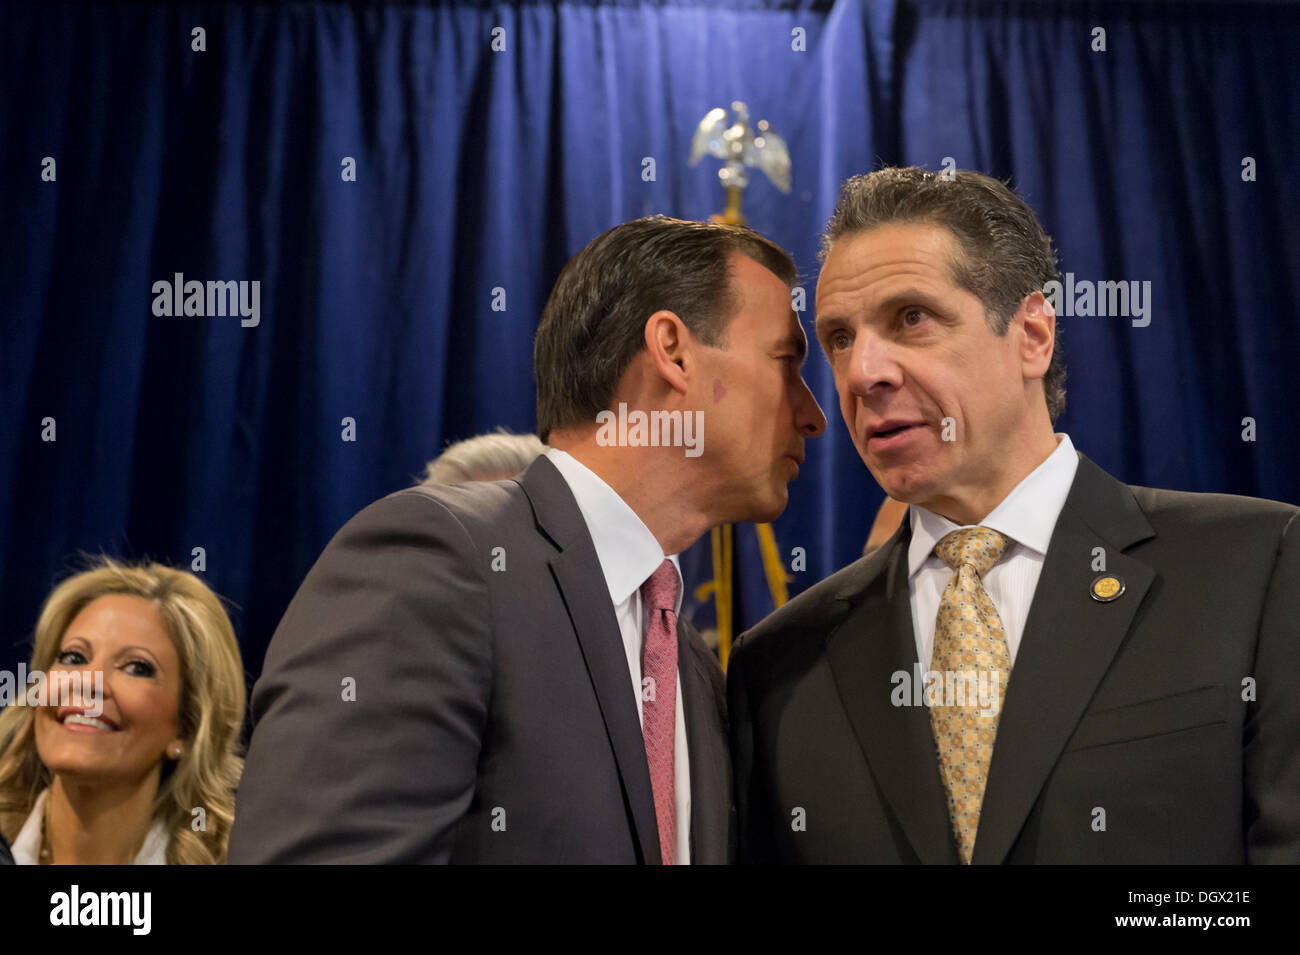 Albertson, New York, U.S. 26th October 2013. R-L, New York Governor ANDREW CUOMO , at right, endorses TOM SUOZZI, left of him, for Nassau County Executive, with supporters, including veterans, union members, and Democratic candidates for office in Nassau and Suffoilk Counties in Long Island, filling the announcement room at the Albertson Veterans of Foreign Wars VFW Post. Democrat Suozzi, the former Nassau County Executive, and Republican encumbant Mangano face each other in a rematch in the upcoming November 5th election. © Ann E Parry/Alamy Live News - Stock Image